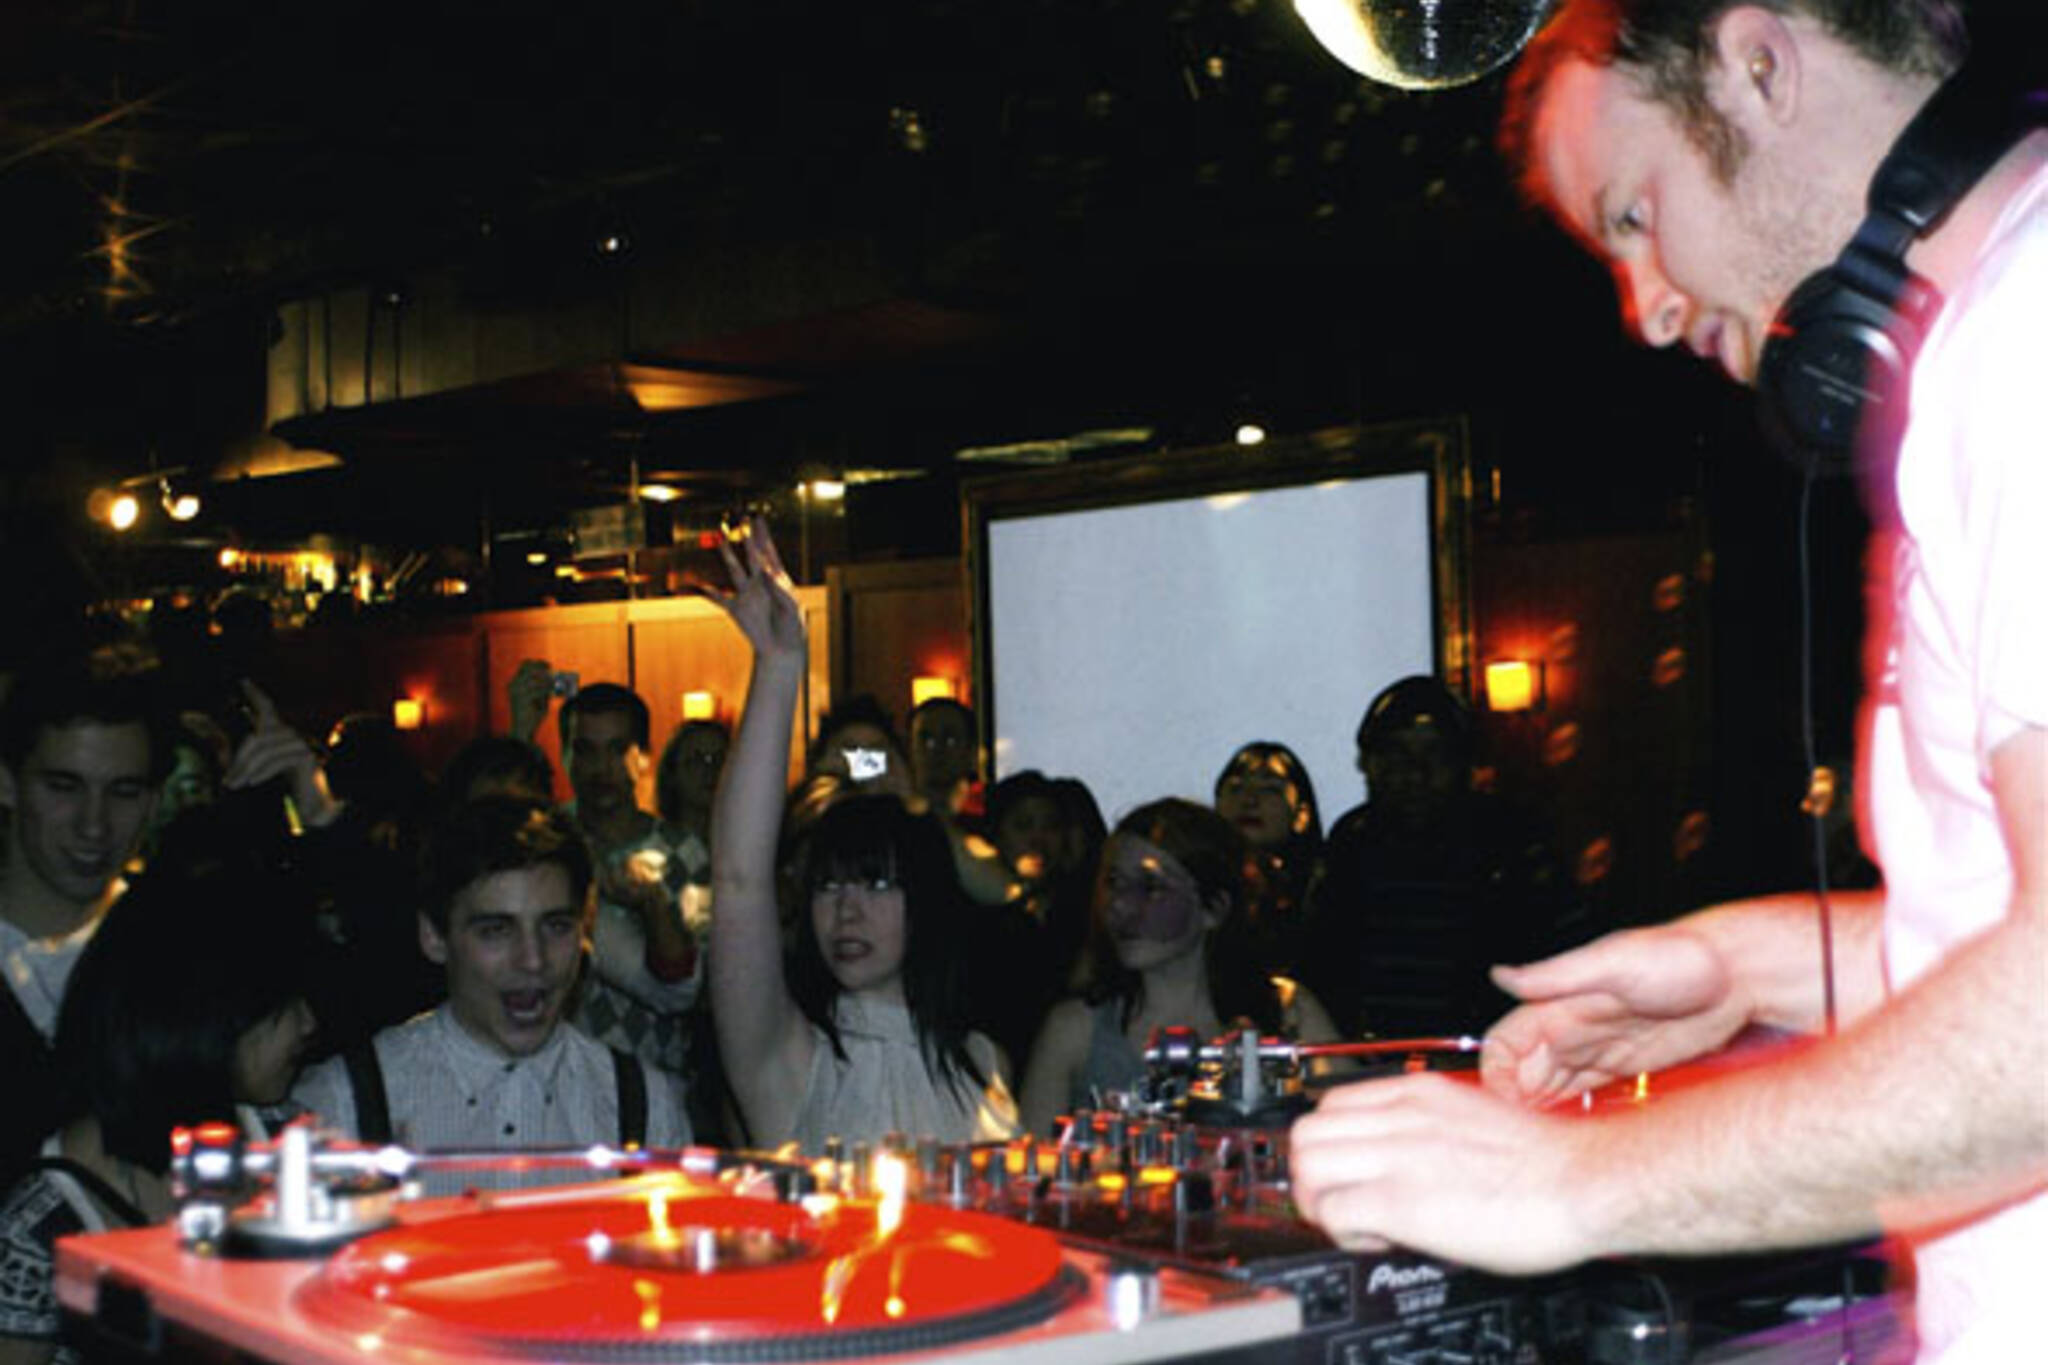 DJ Skratch Bastid at The Drake in Toronto during What's in the Box